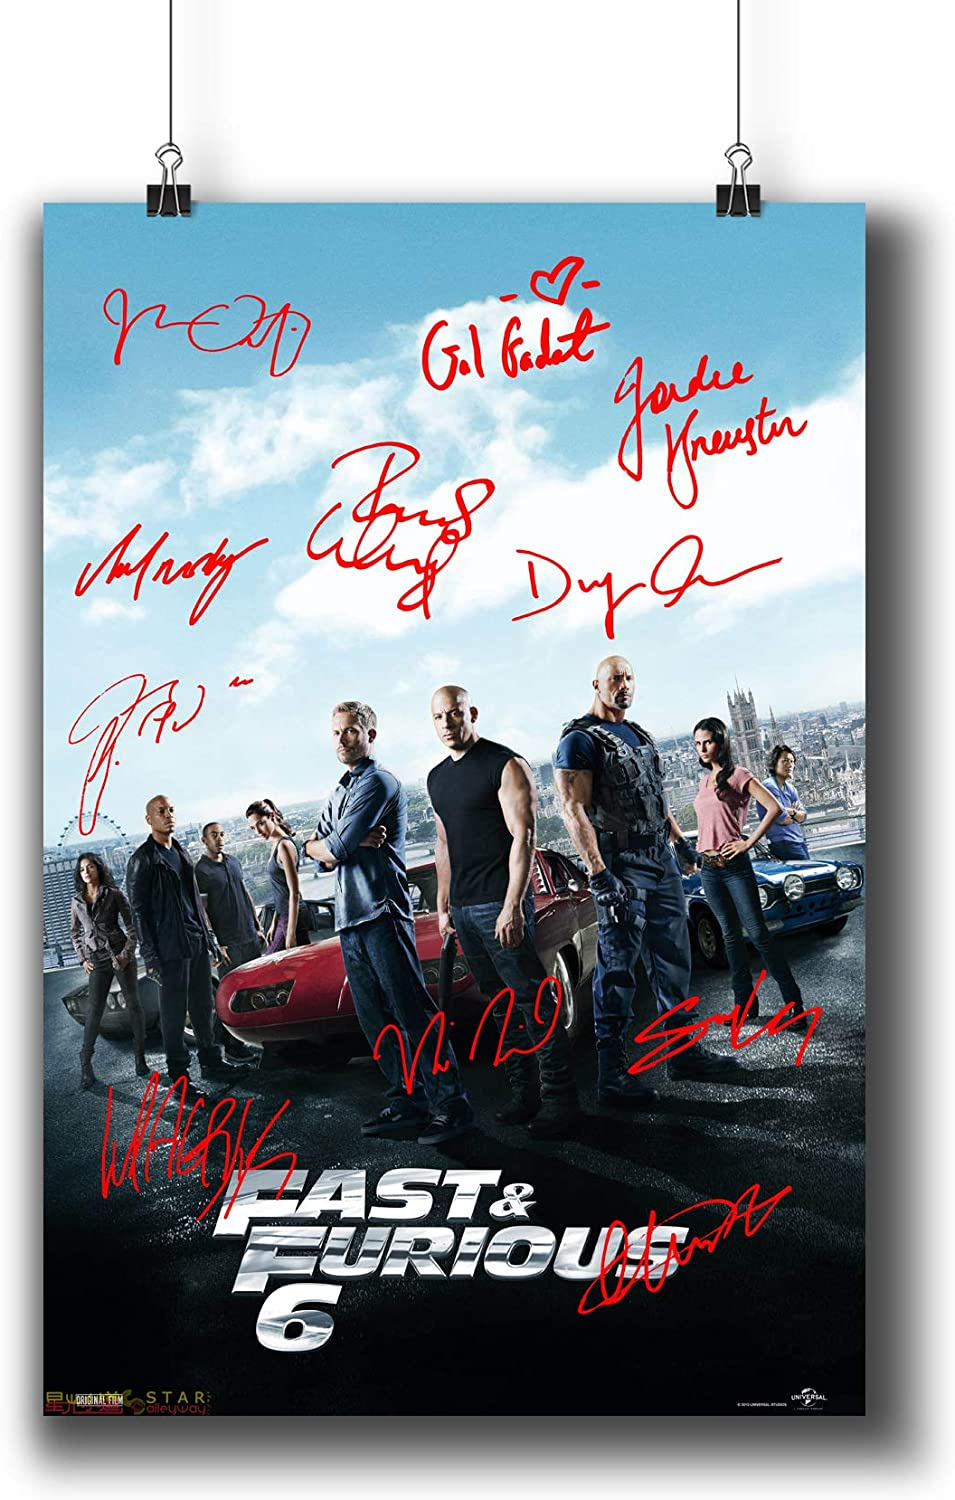 Fast & Furious 6 (2013) Movie Poster Small Prints 423-601 Reprint Signed Casts,Wall Art Decor for Dorm Bedroom Living Room (A3|11x17inch|29x42cm)